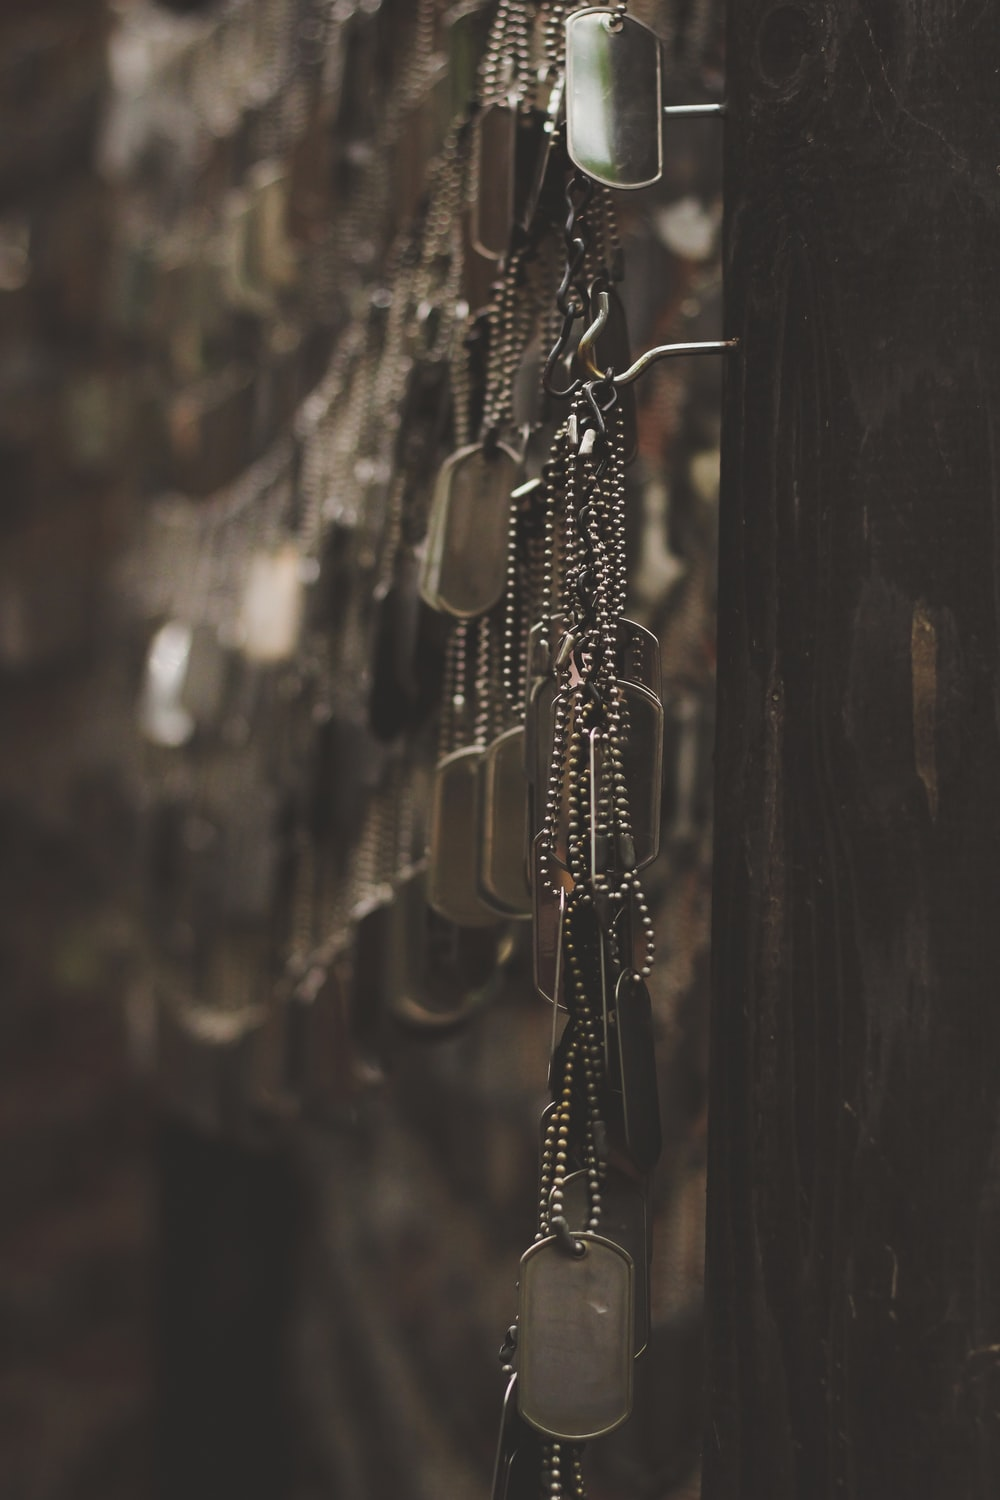 silver-colored god tags hanging on hooks shallow focus photography